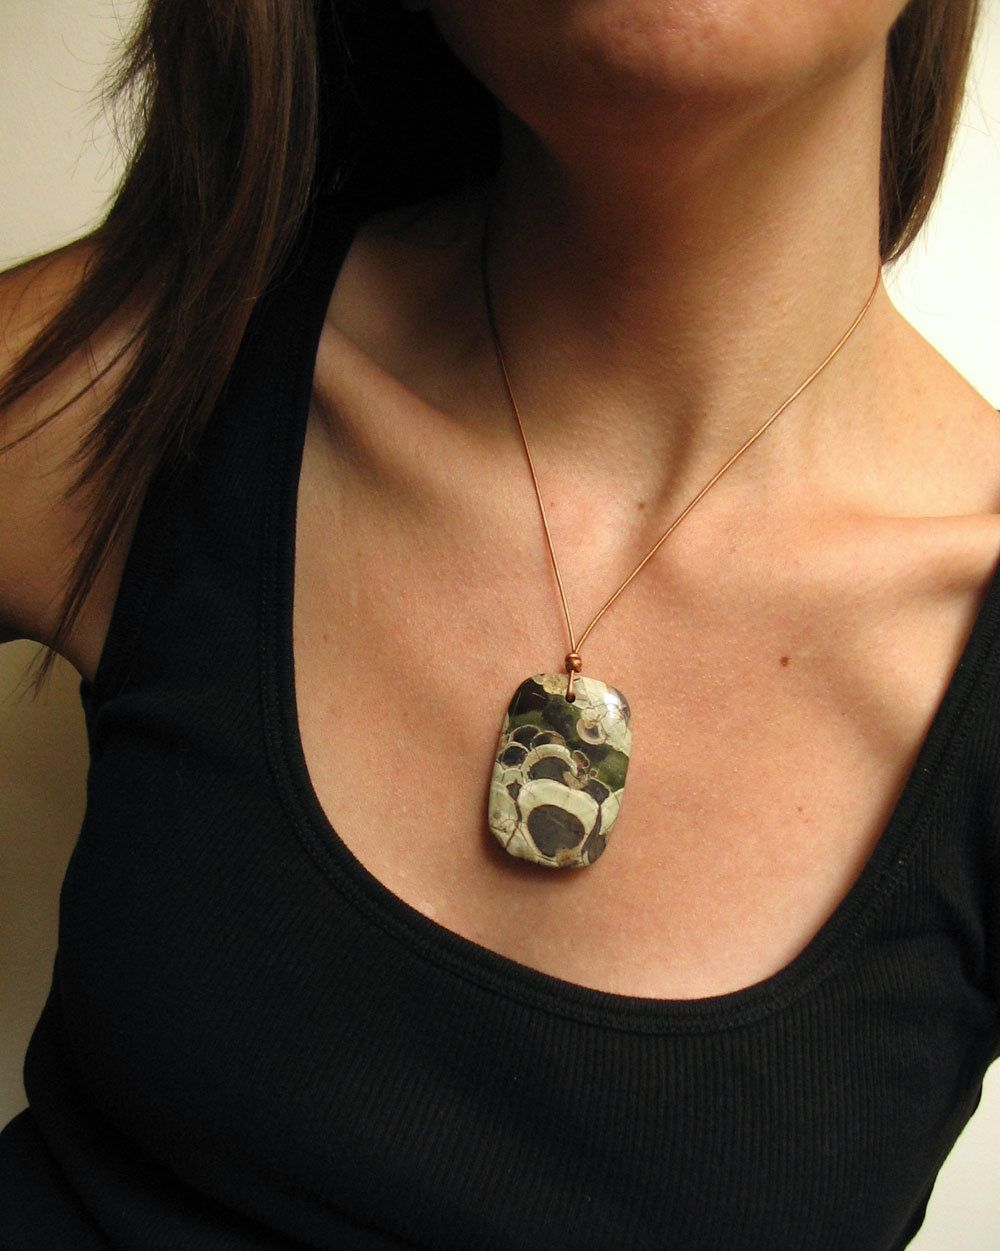 Mushroom Jasper Necklace, Leather and Sterling. By girl tuesday jewelry,+$40.00